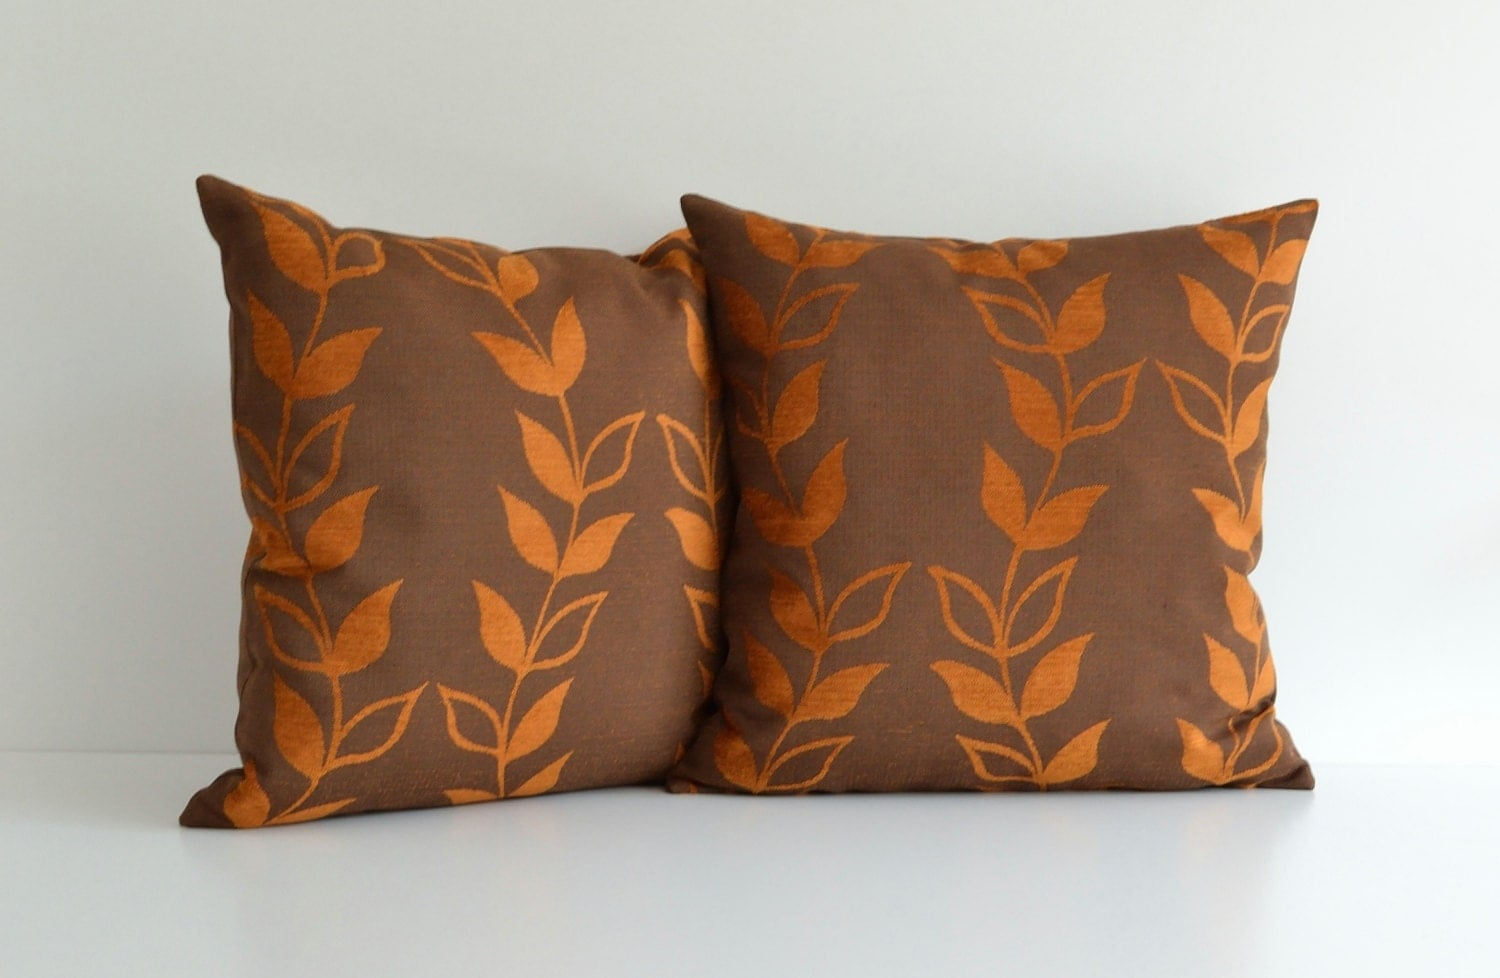 Decorative Pillows For Dark Brown Couch : 20x20 Orange And Brown Decorative Throw Pillow For Couch